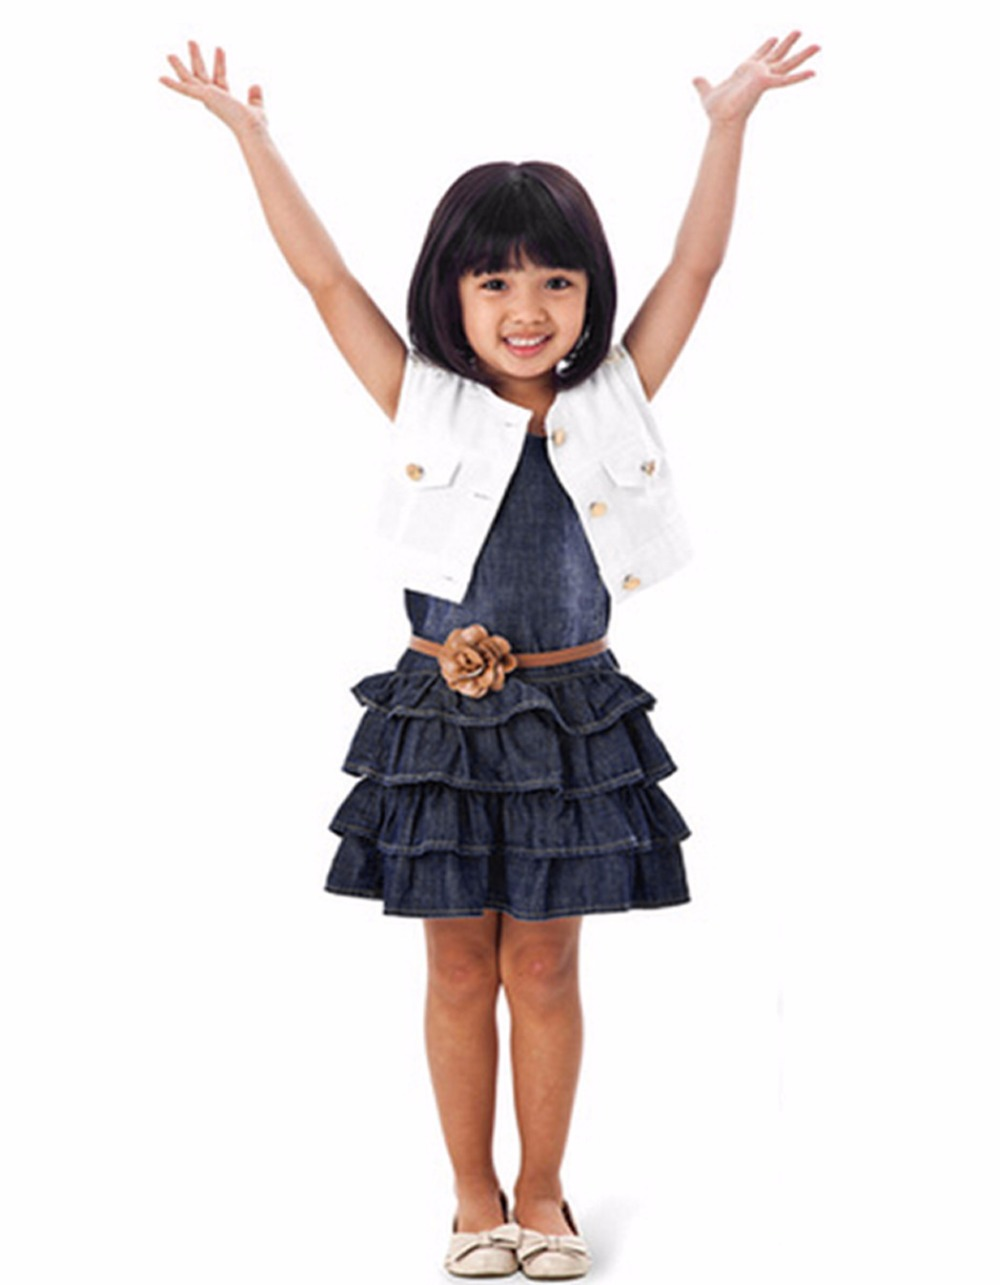 Baby Girl Kids Casual Dress Outfit Clothes Cotton Jacket + Denim Layered Toddler tutu Dress for girls with belt 66